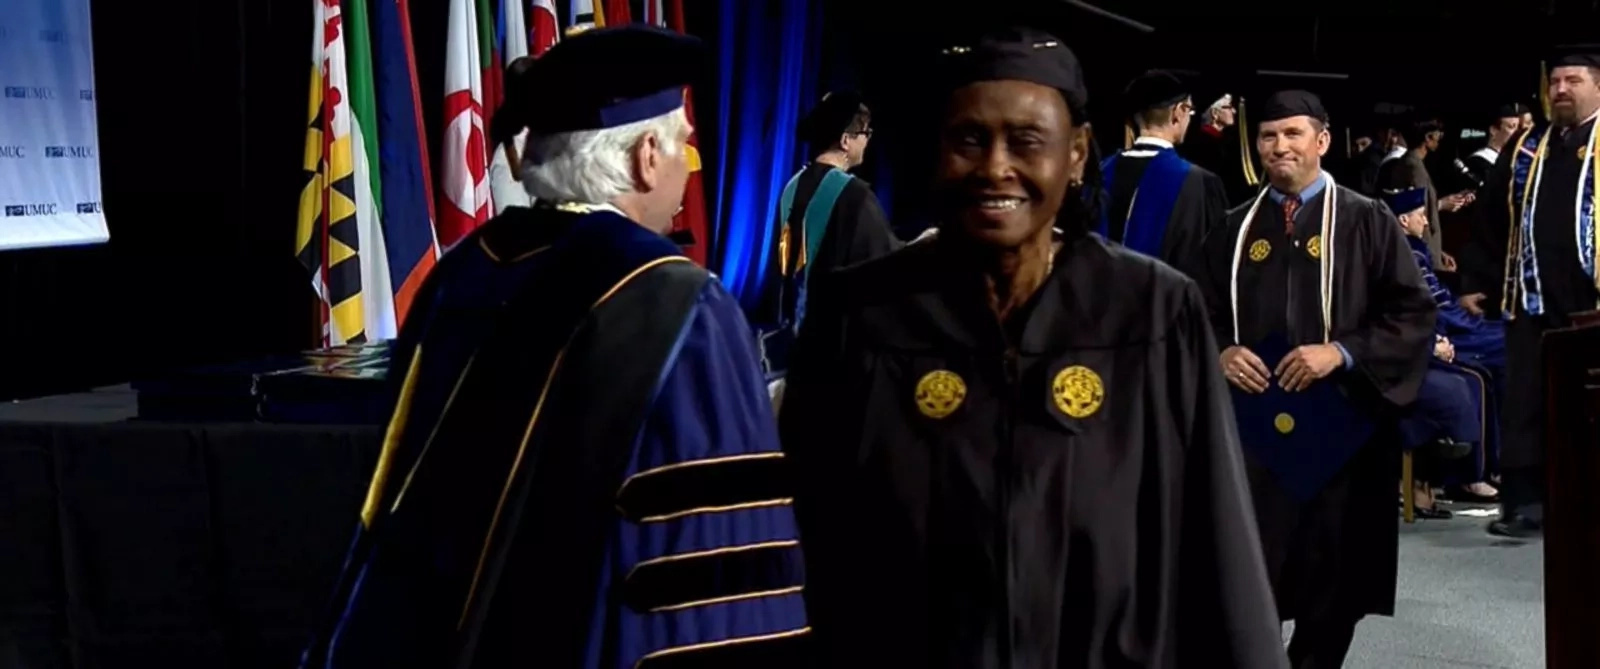 79-year-old Lucy Capers about to receive her Bachelor of Science degree